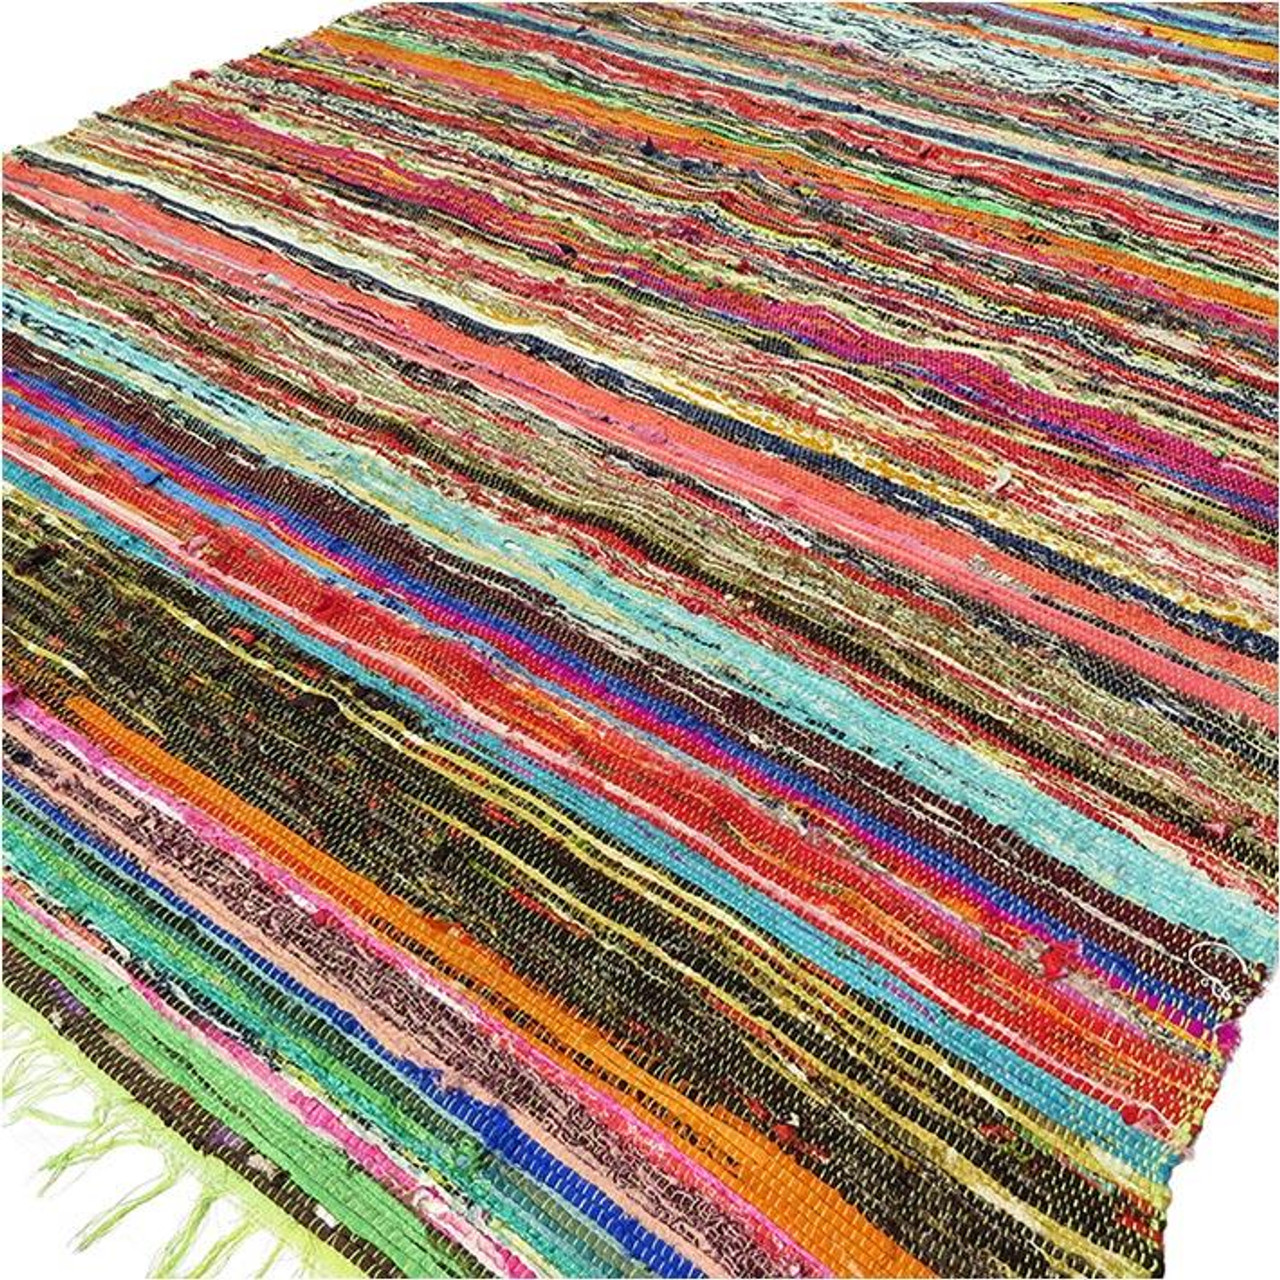 Luxury Rag Rug - Recycled Material - 150cm x 90cm - Hand Woven - Green